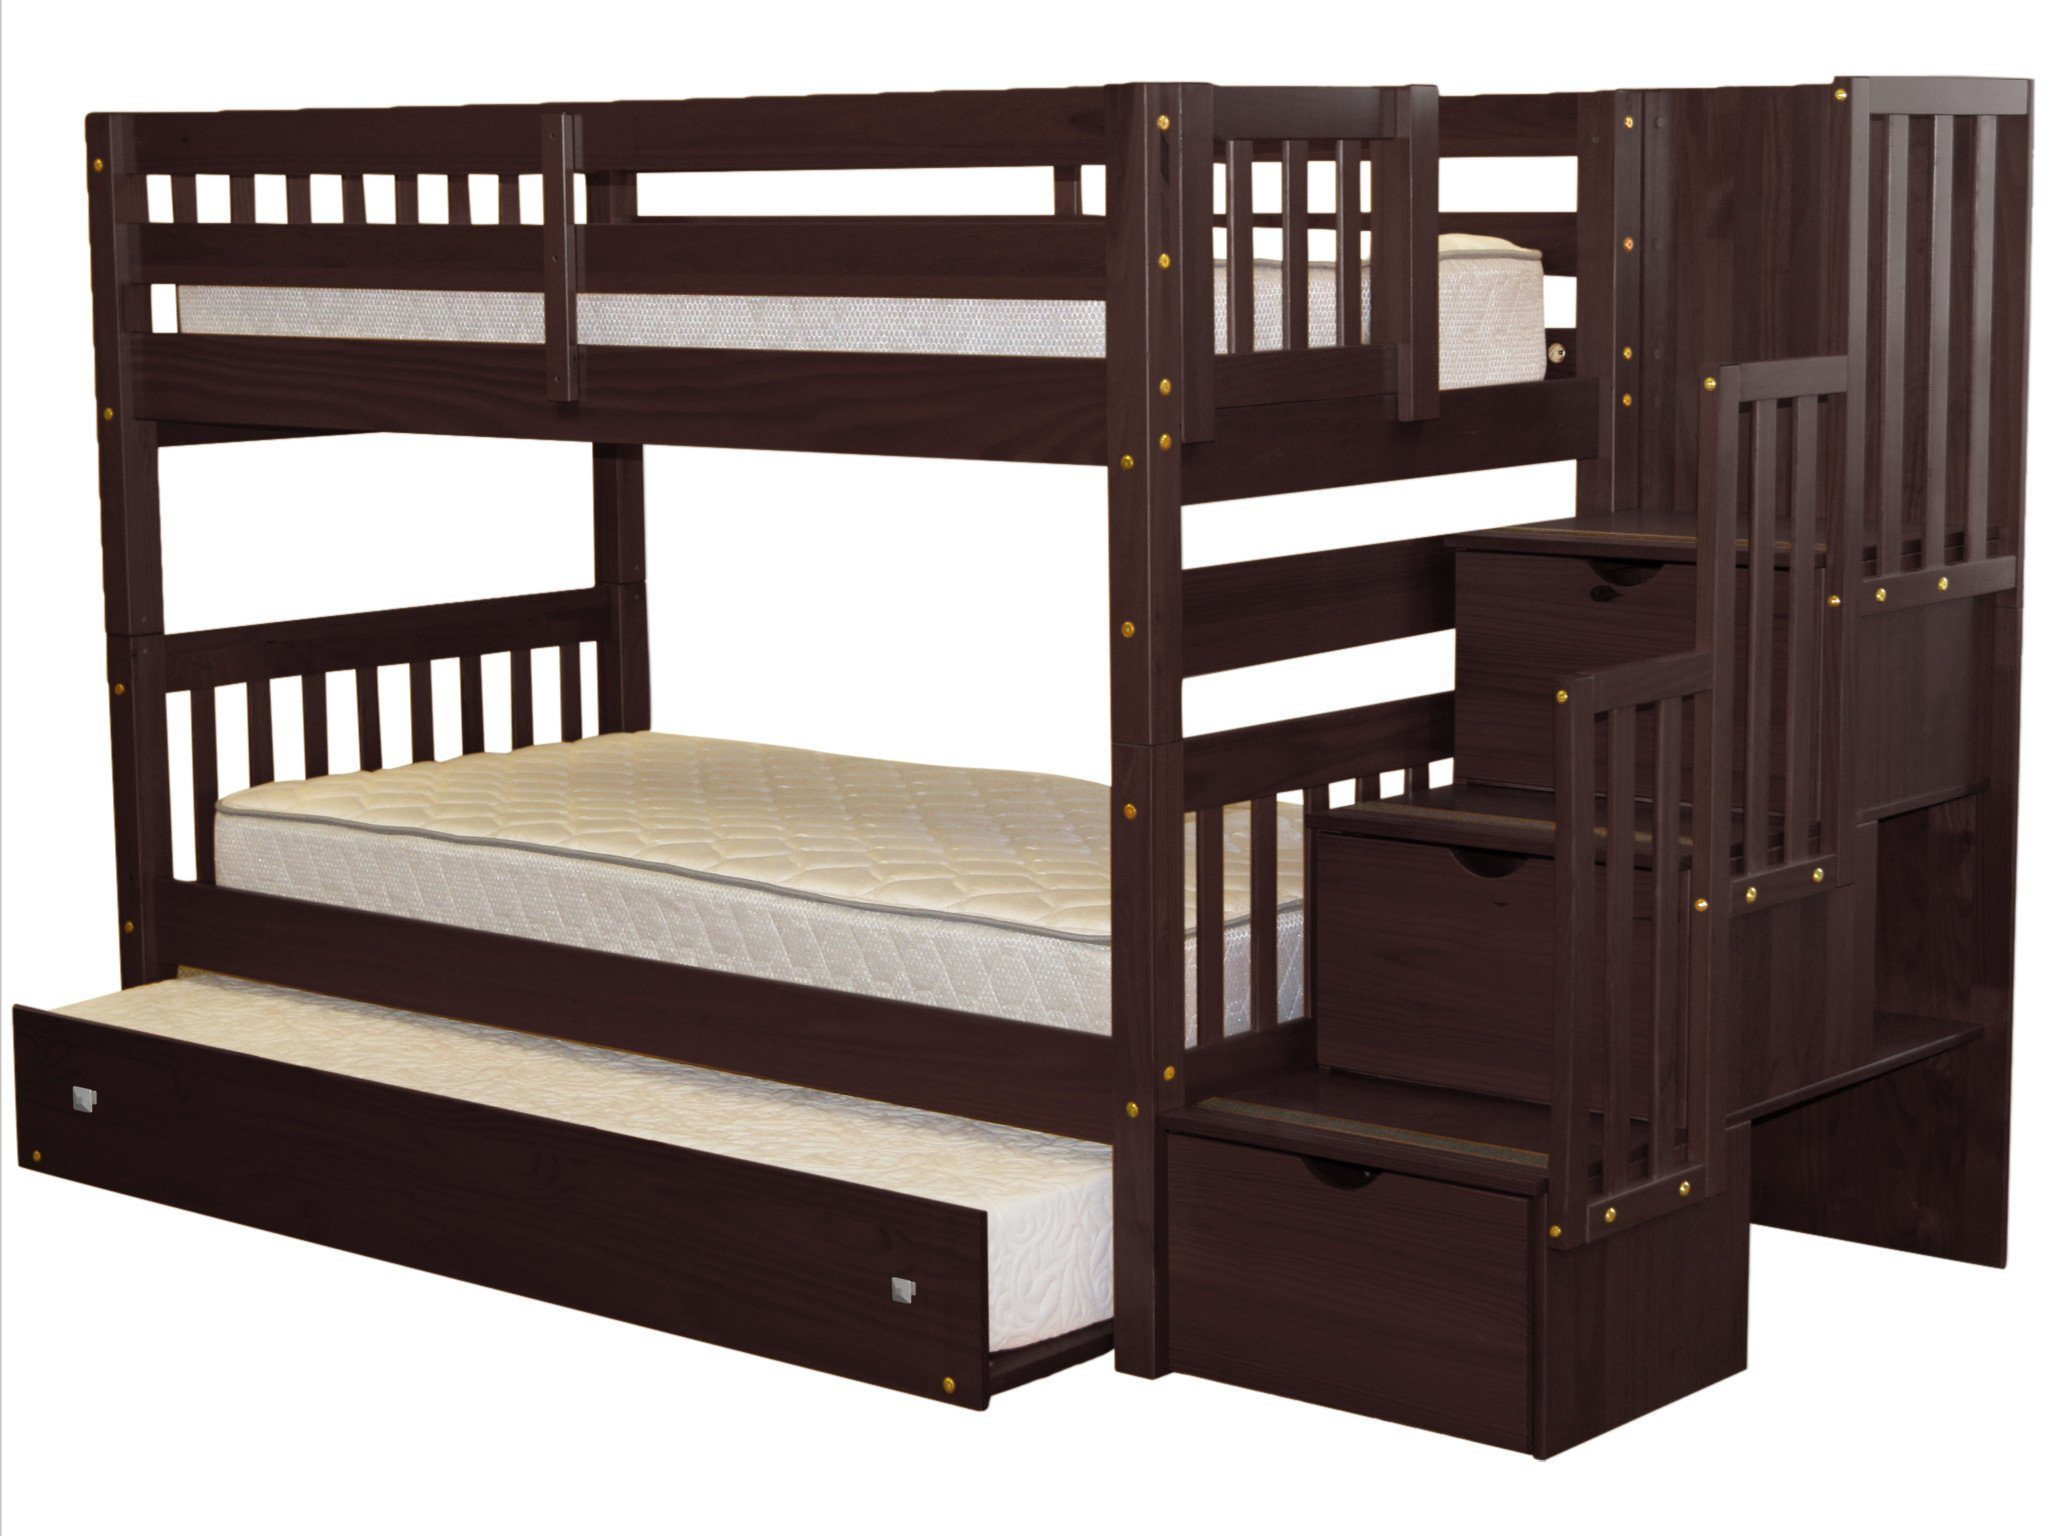 Bon Bedz King Stairway Bunk Beds Twin Over Twin With 3 Drawers In The Steps And  A